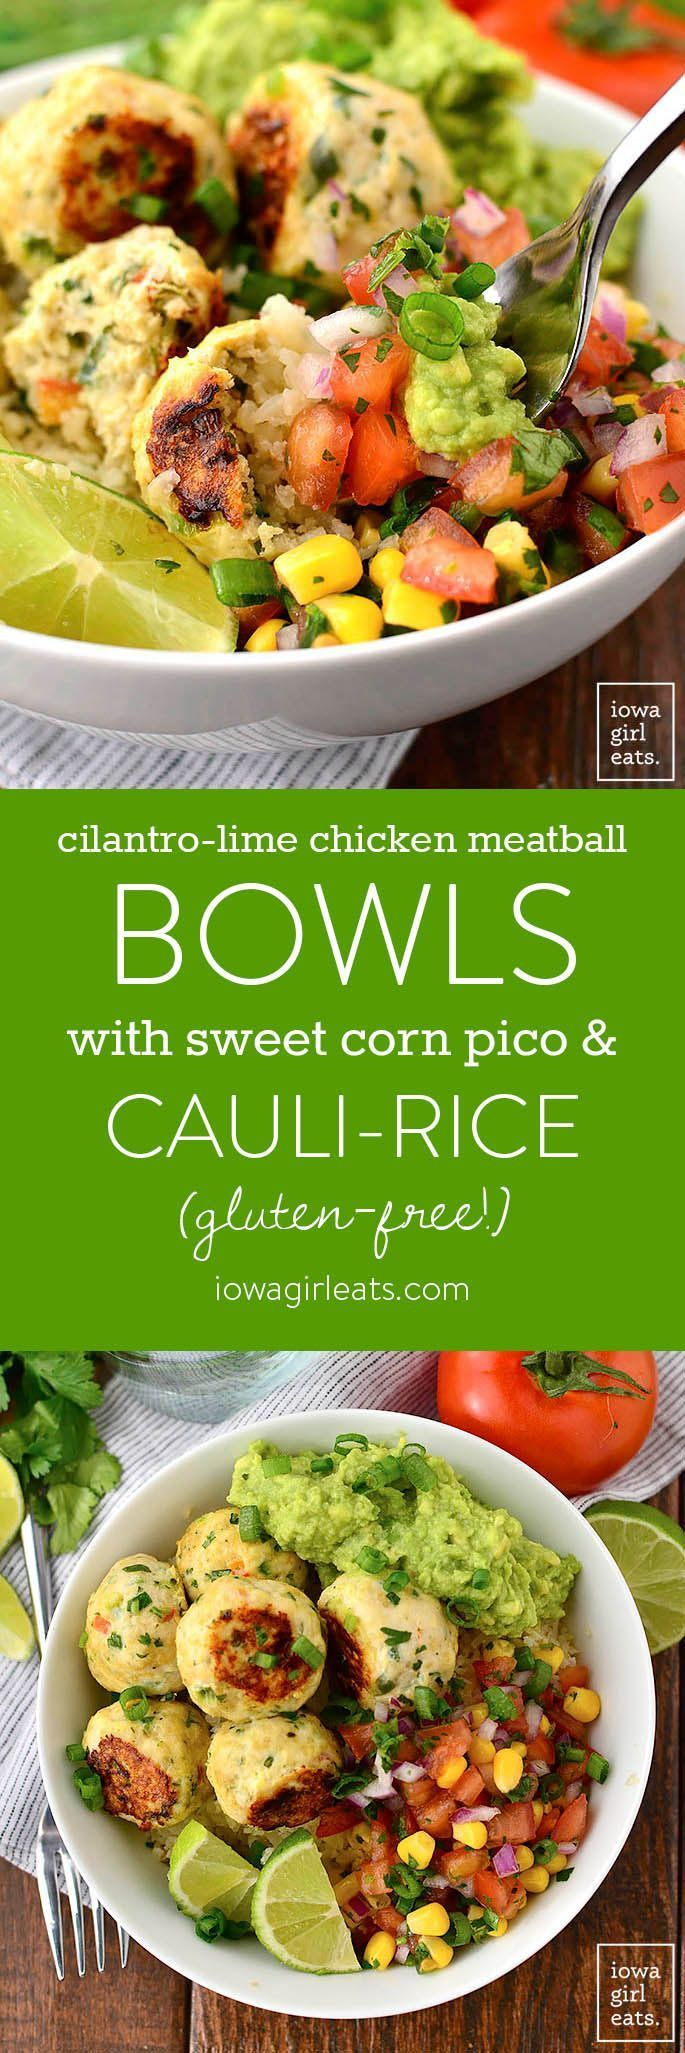 Cilantro-Lime Chicken Meatball Bowls with Sweet Corn Pico de Gallo and Cauli-Rice are a fresh and flavorful gluten-free lunch or dinner recipe. Prep once and enjoy all week long! | iowagirleats.com #glutenfree